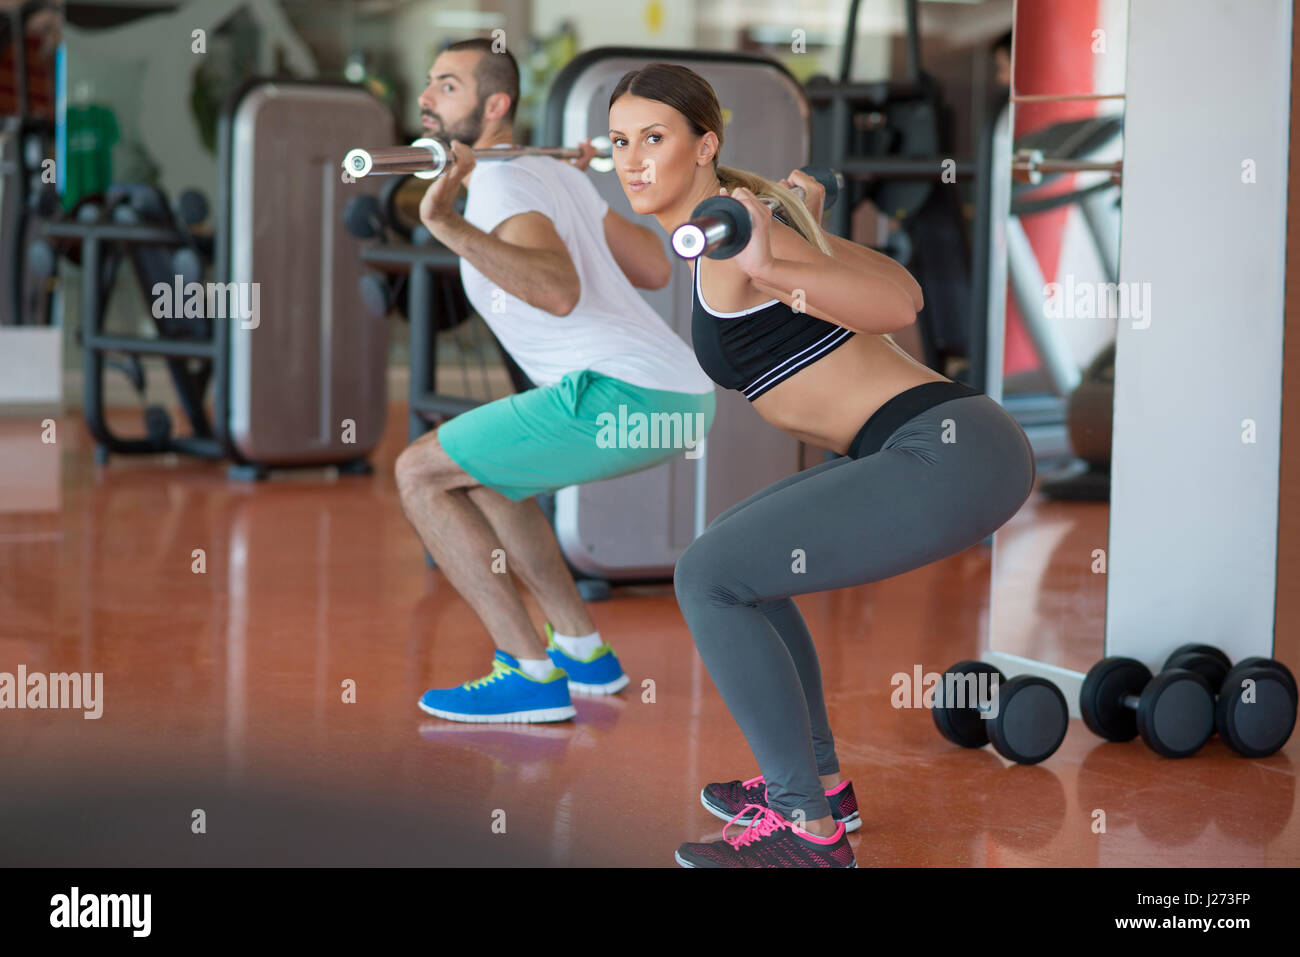 young man and woman with barbell flexing muscles and making shoulder press squat in gym - Stock Image